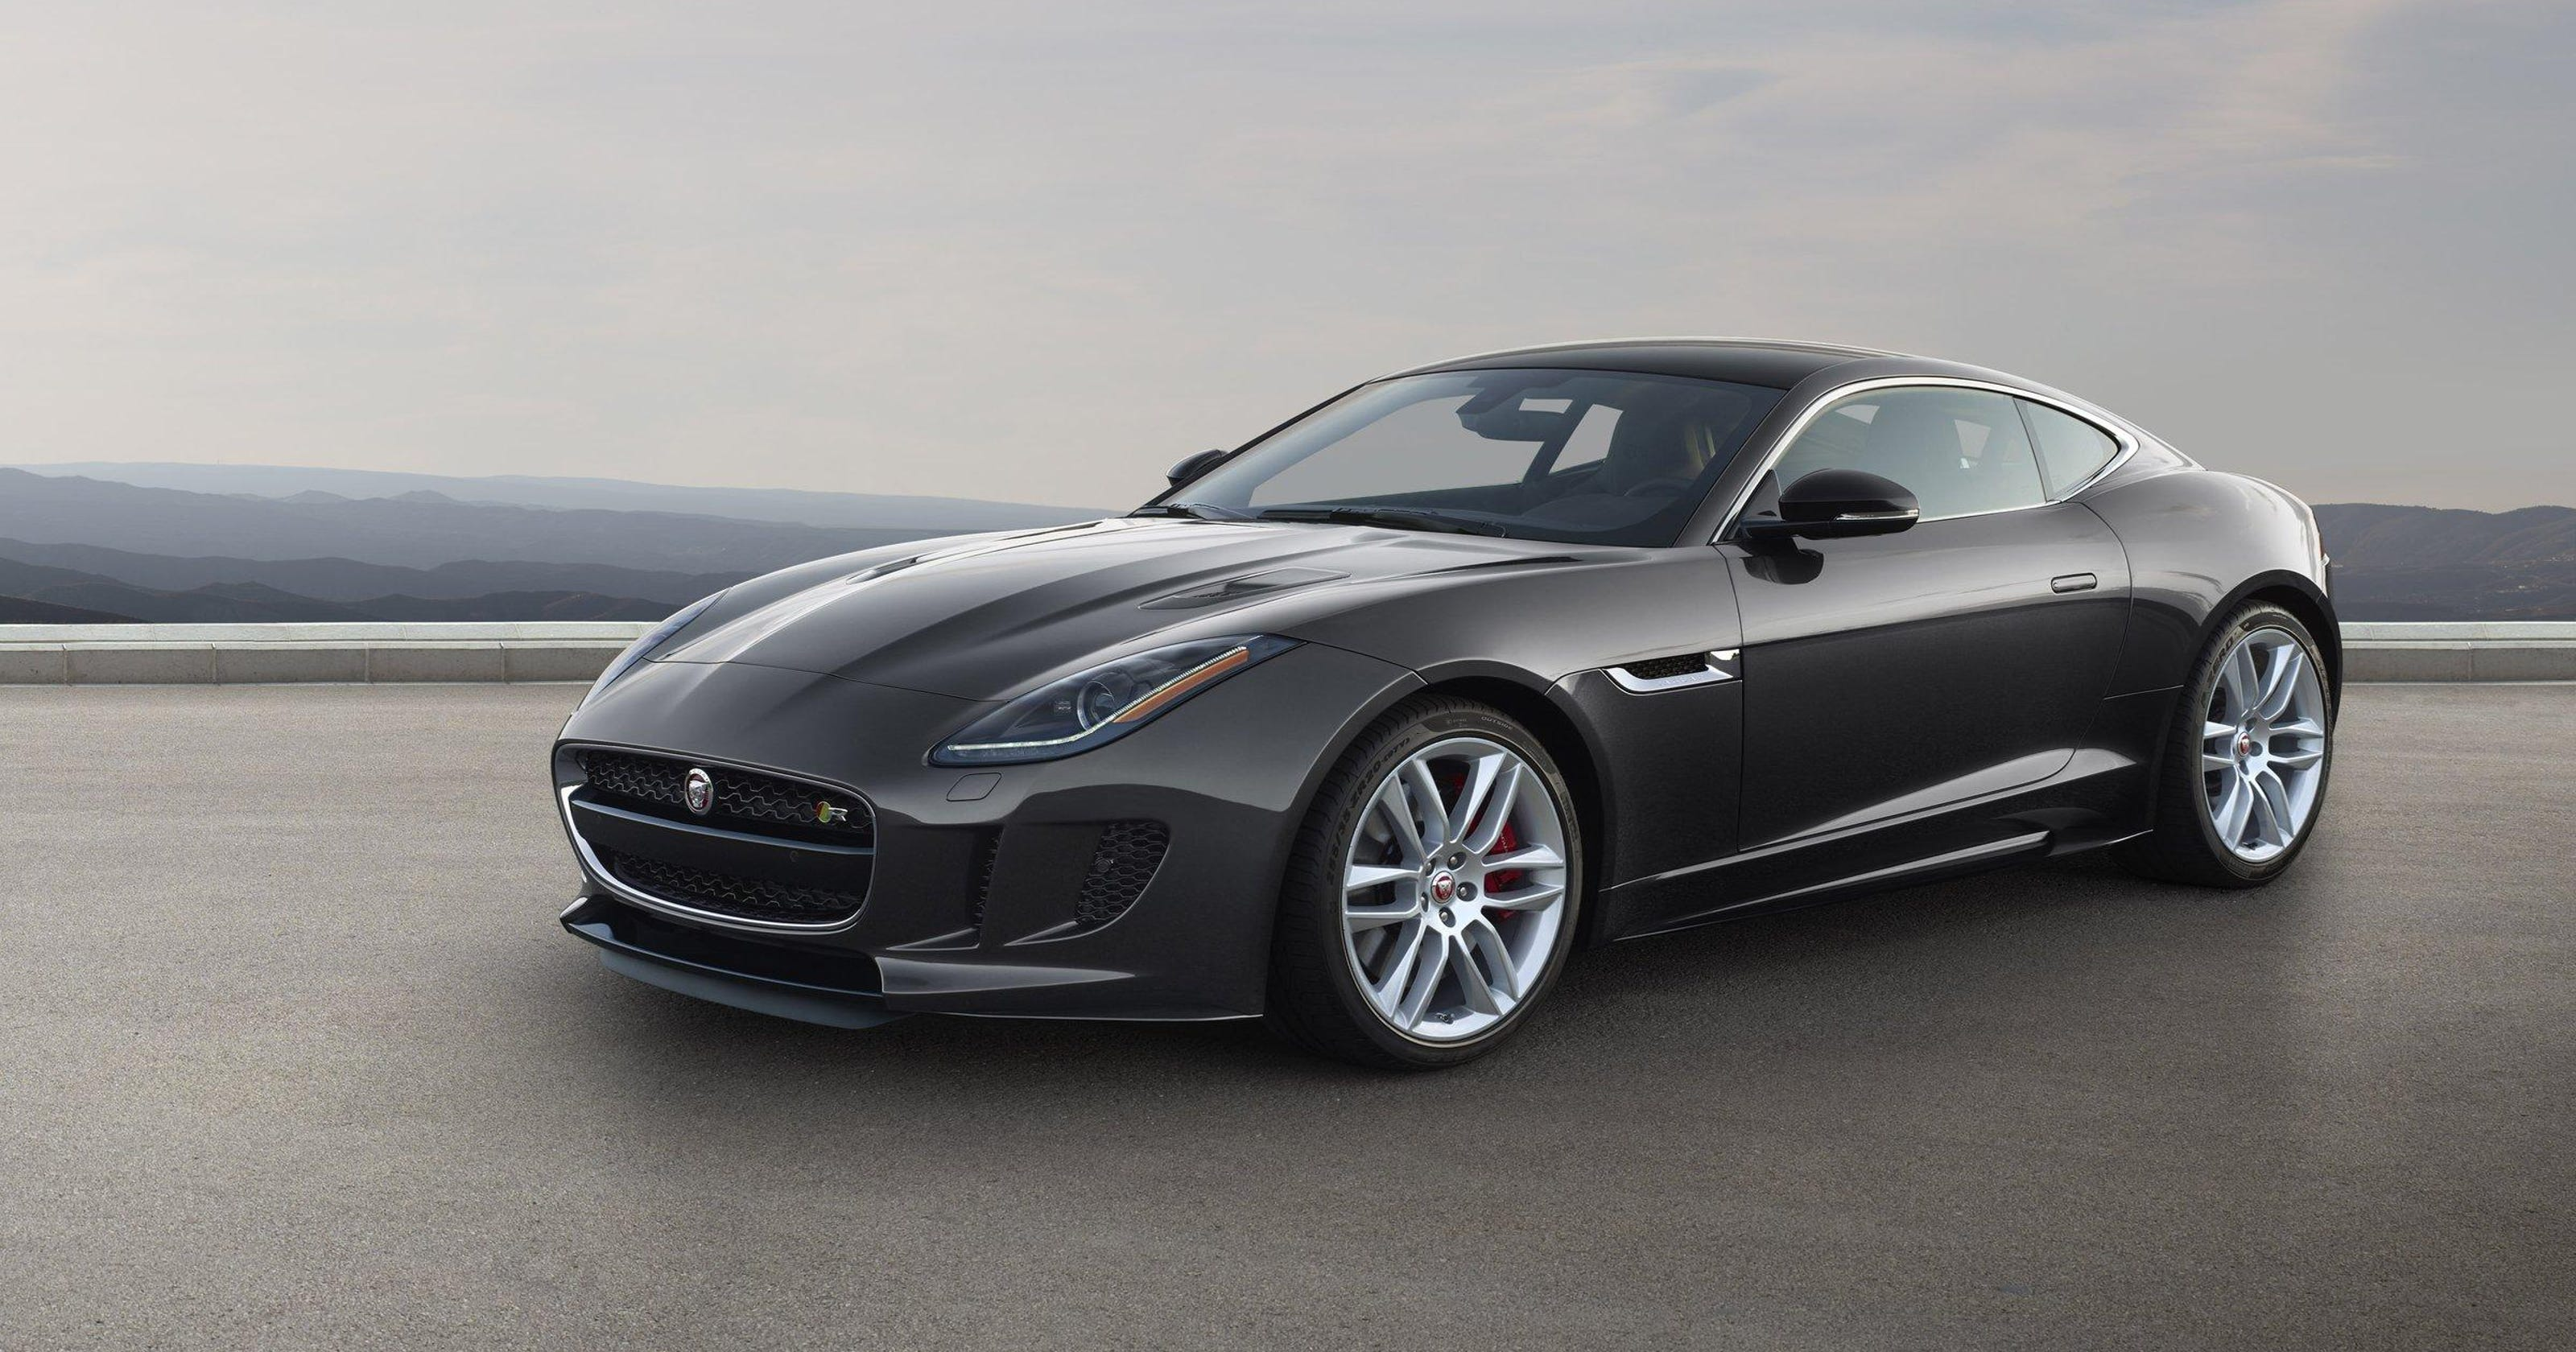 Awd Turns 2016 Jaguar F Type Into A Car For Any Season